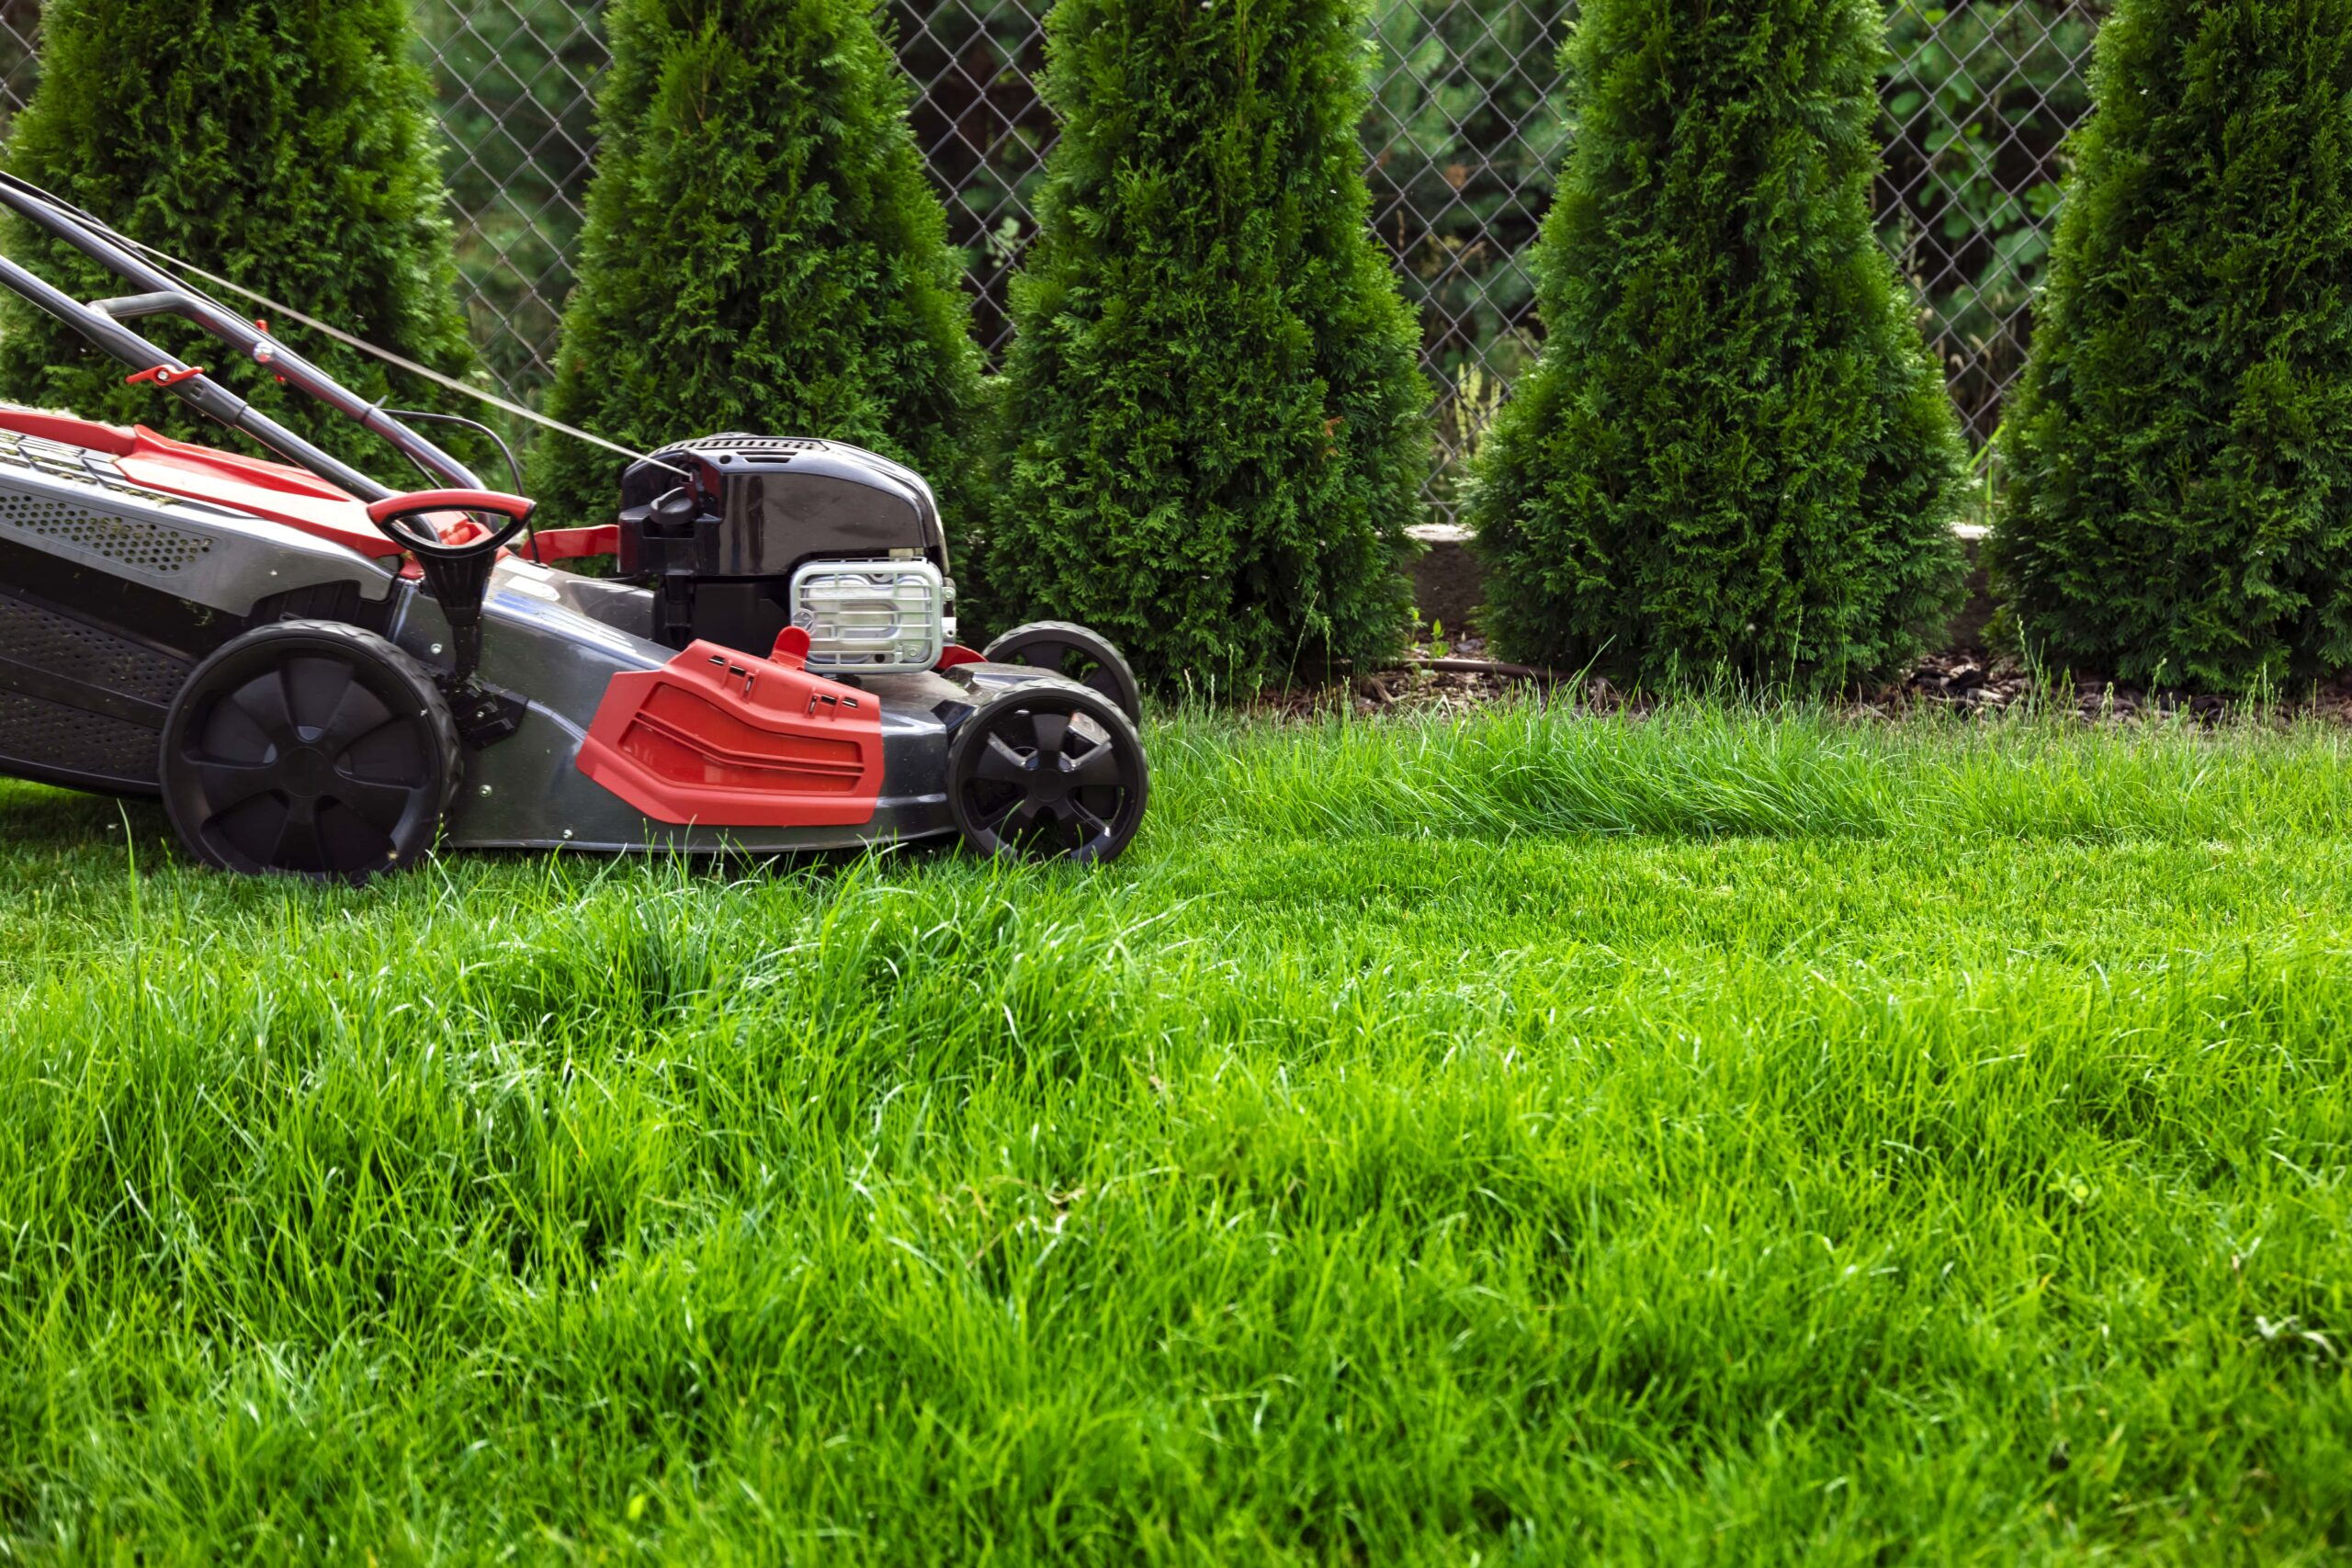 mowing-green